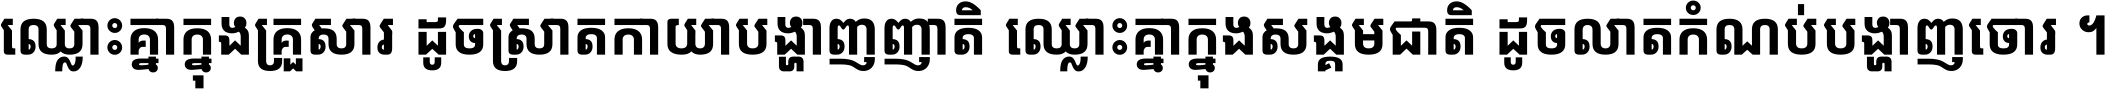 Noto Sans Khmer UI ExtraCondensed Bold